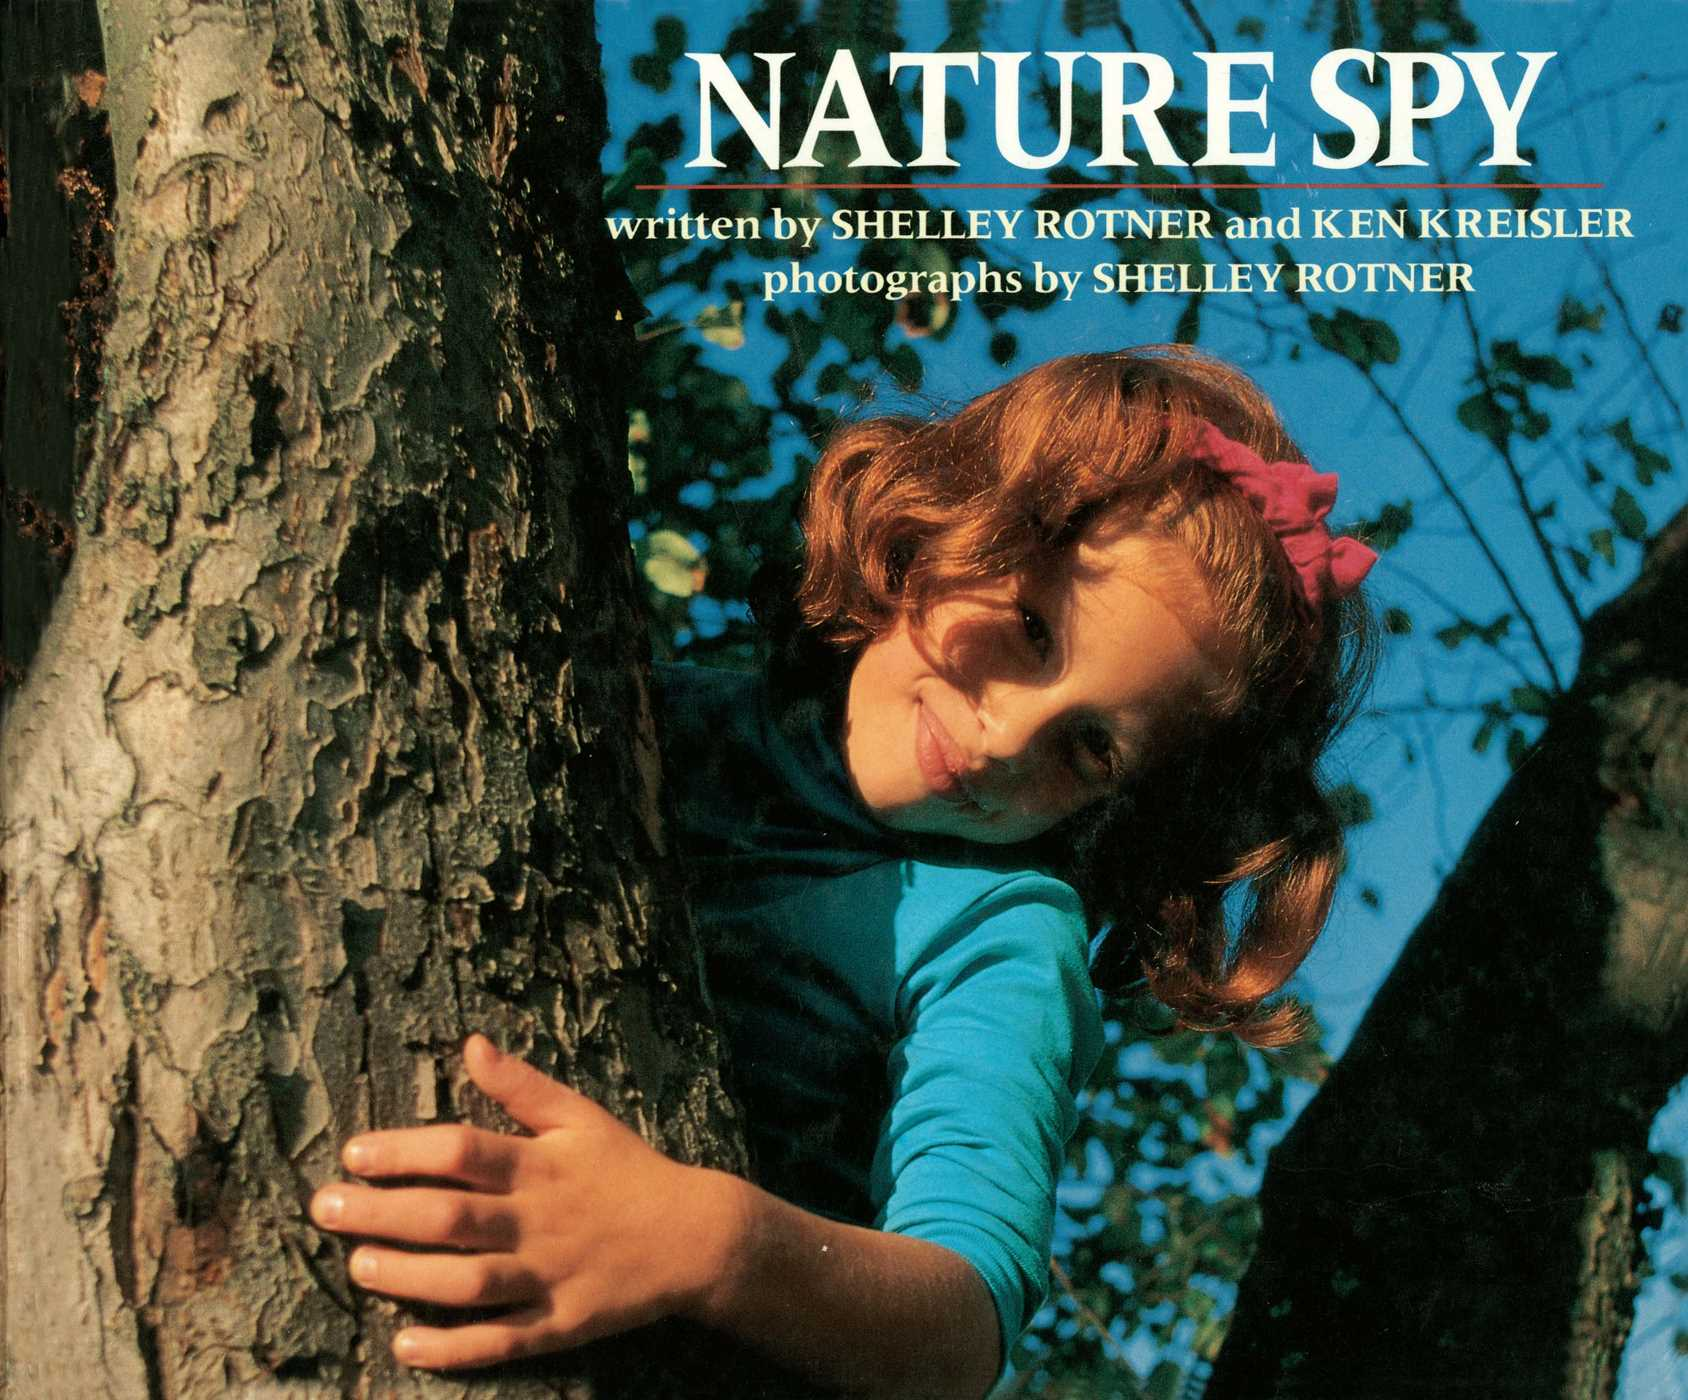 Image result for Nature spy book